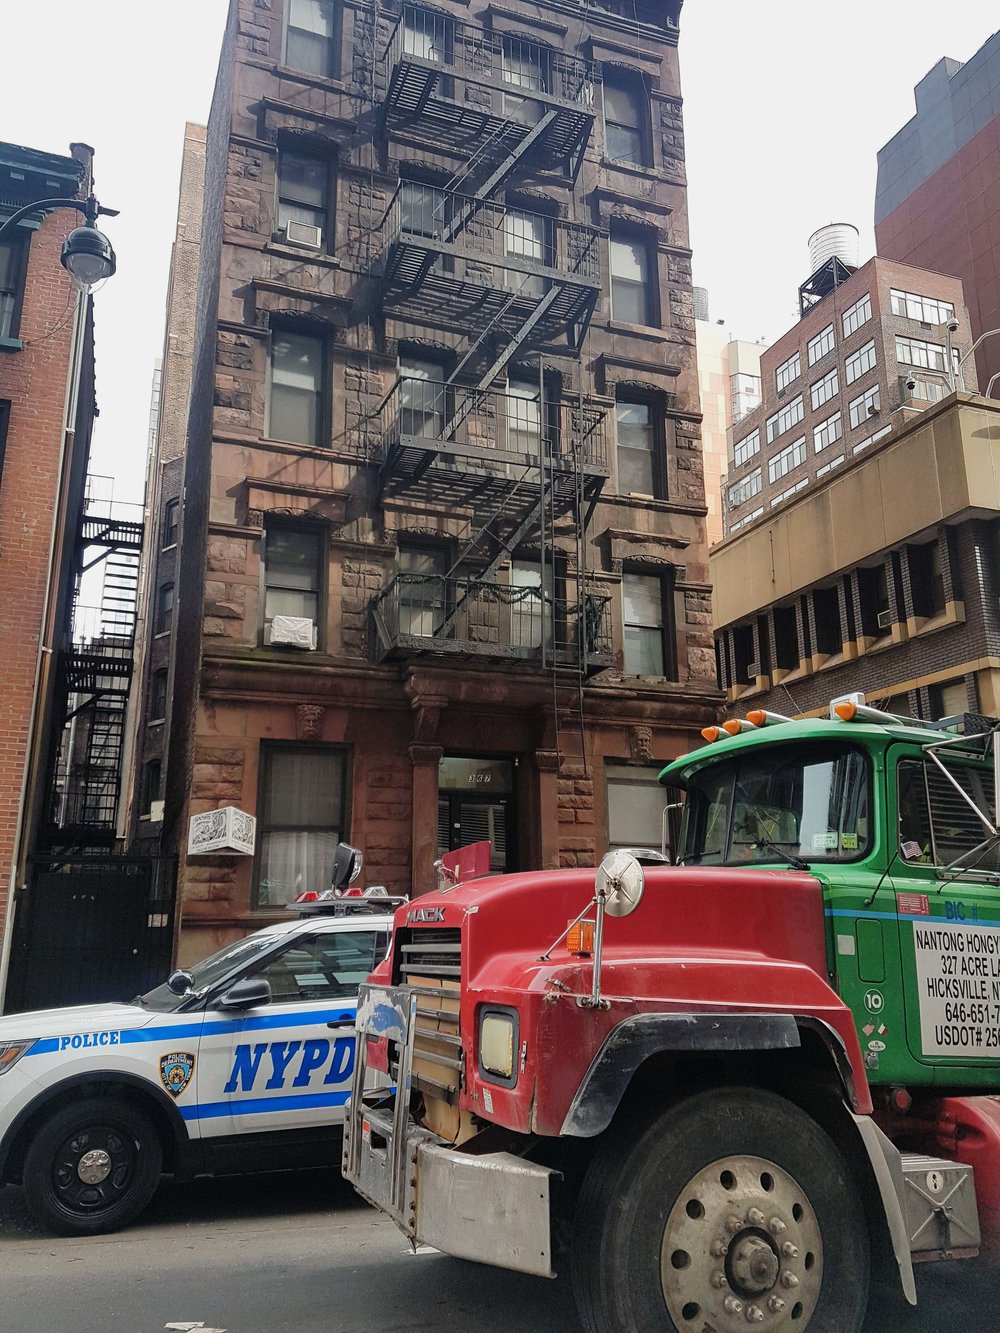 new york truck and fire escape.jpg